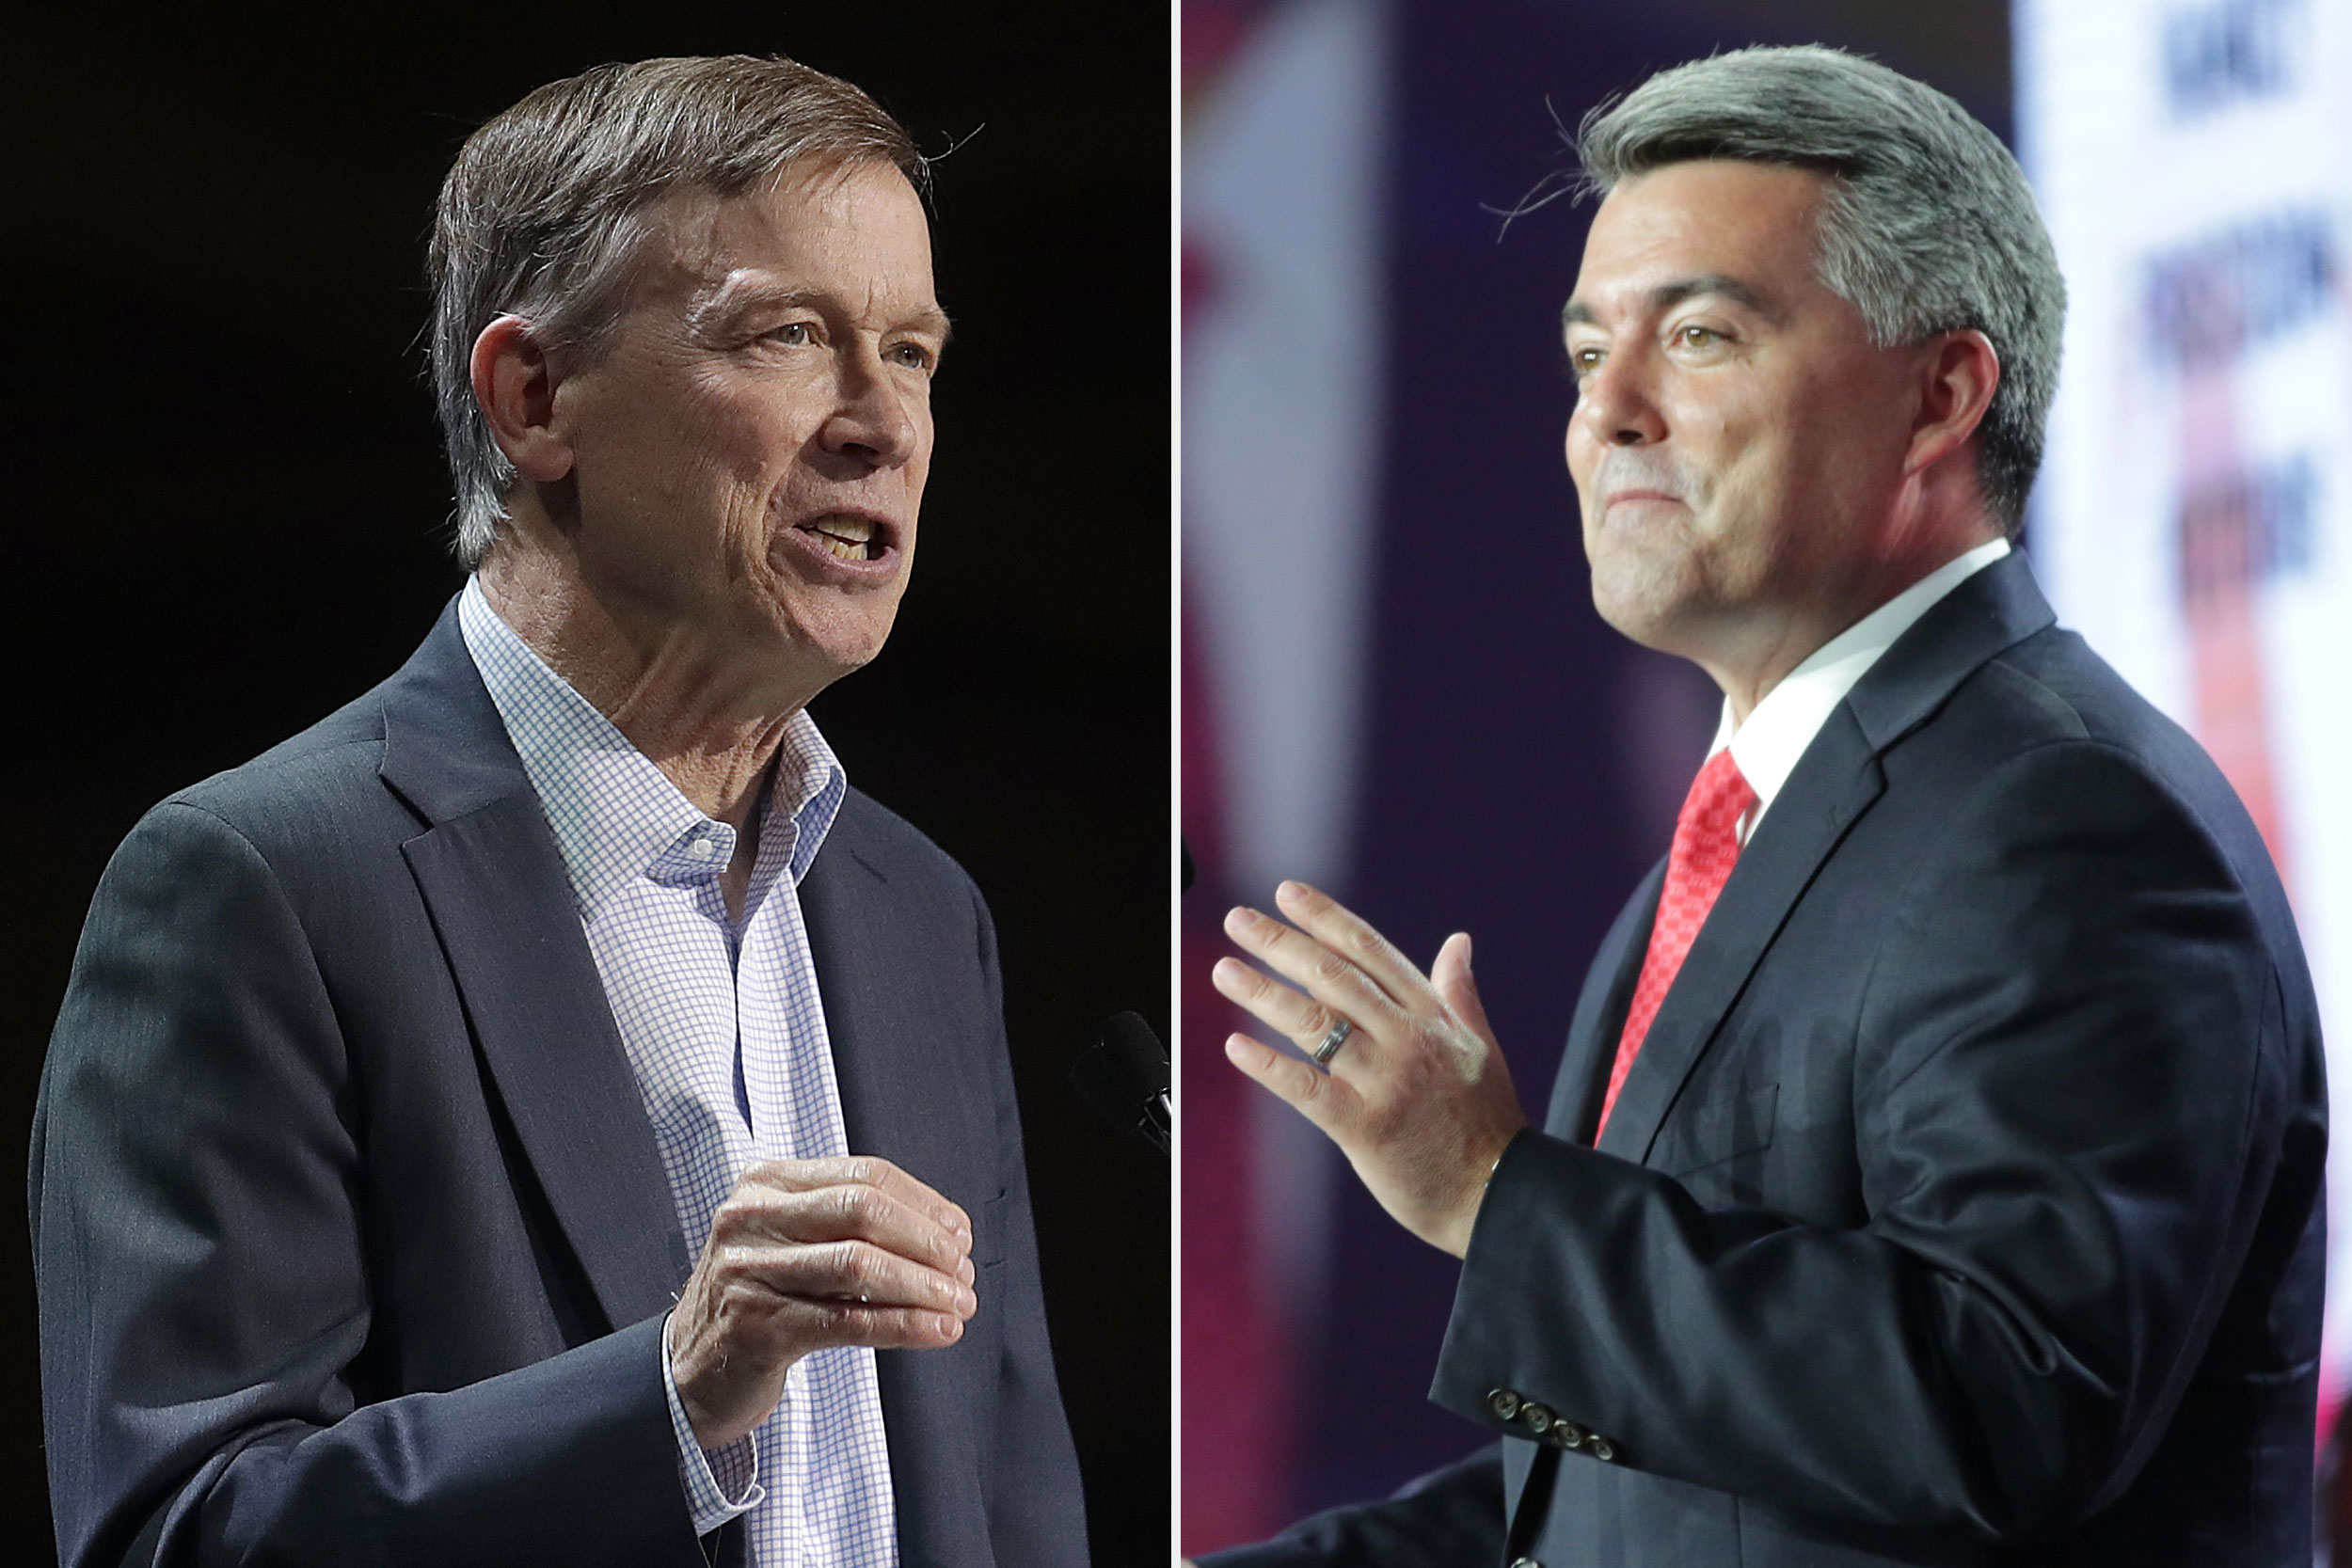 Former Gov. John Hickenlooper, left, during the 2019 California Democratic Party State Organizing Convention in San Francisco, and Sen. Cory Gardner at the 2019 Western Conservative Summit in Denver.